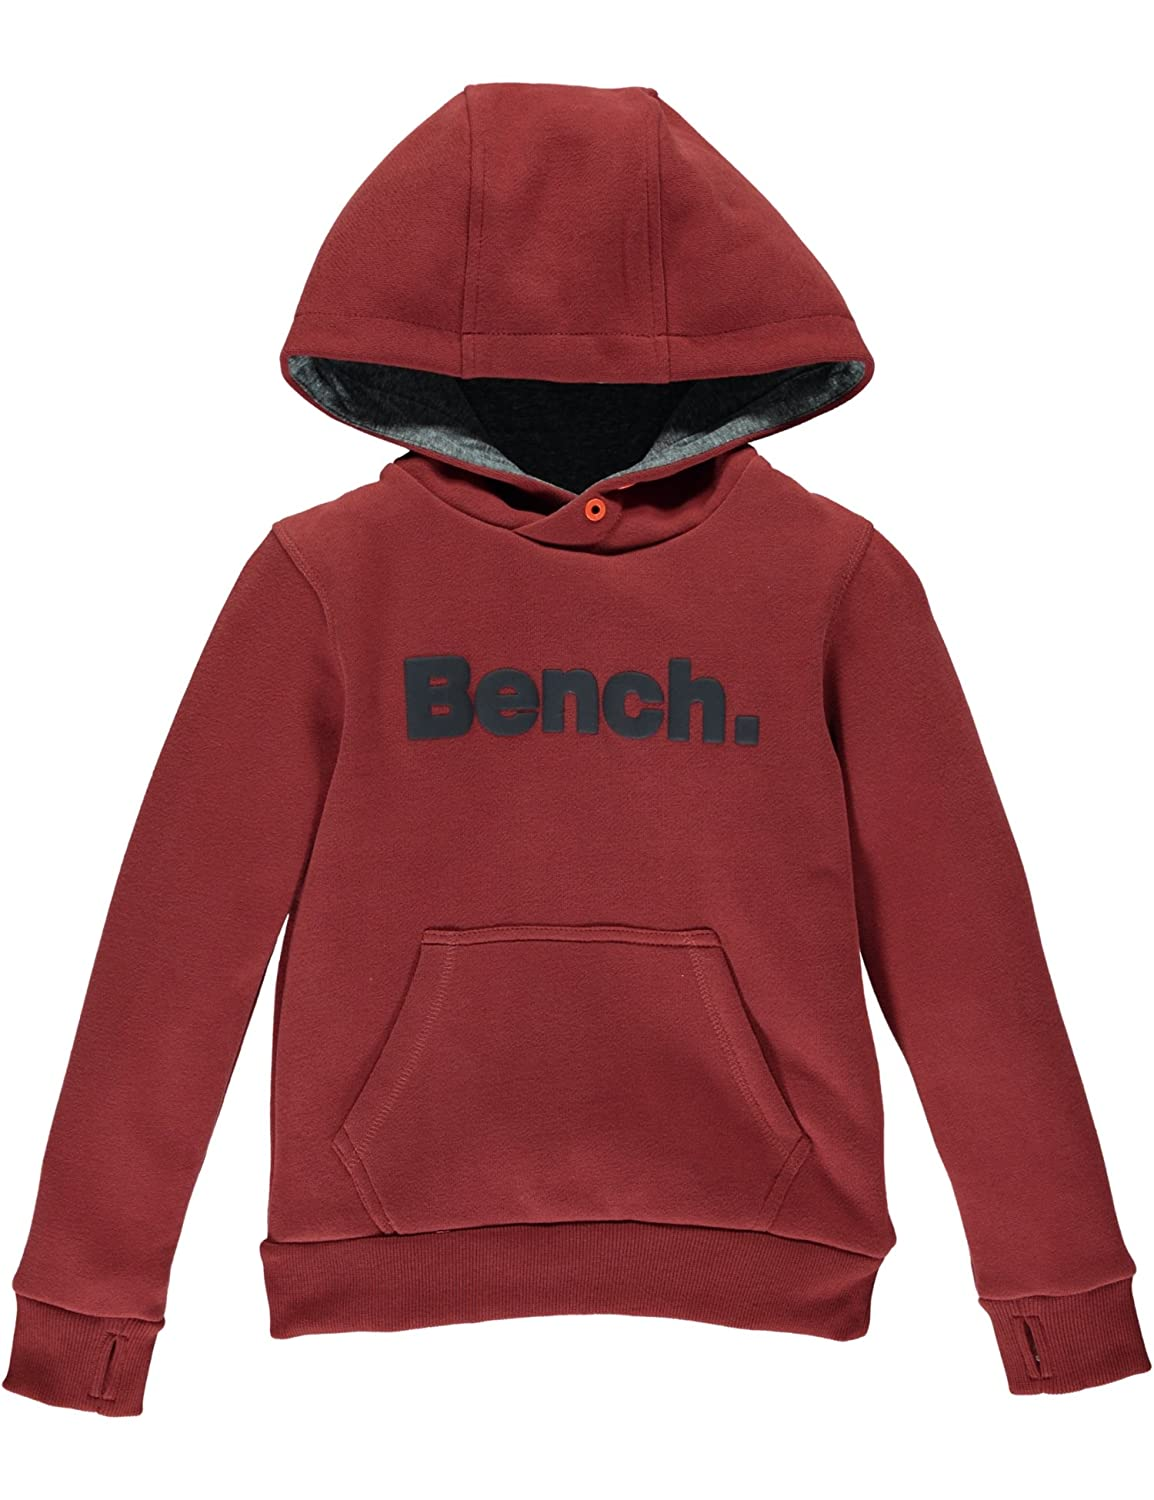 Bench Boy's Loop Back-C Hoodie Brown (Rosewood) 3-4 Years BBEK0453C